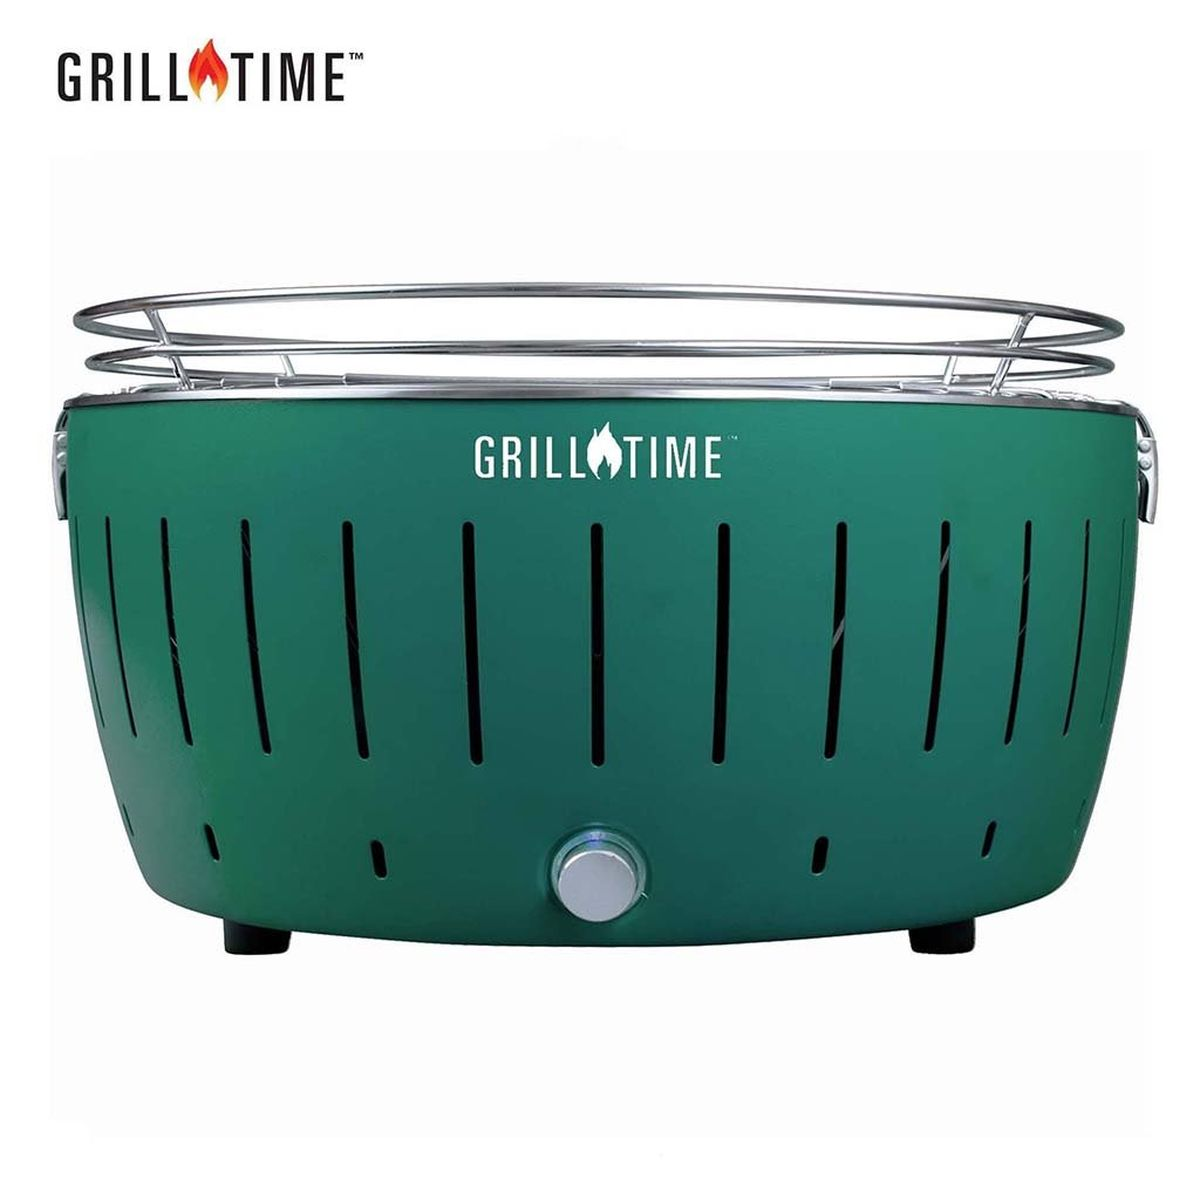 Grill Time Tailgater GTX XL Pack Portable Charcoal Grill - Green